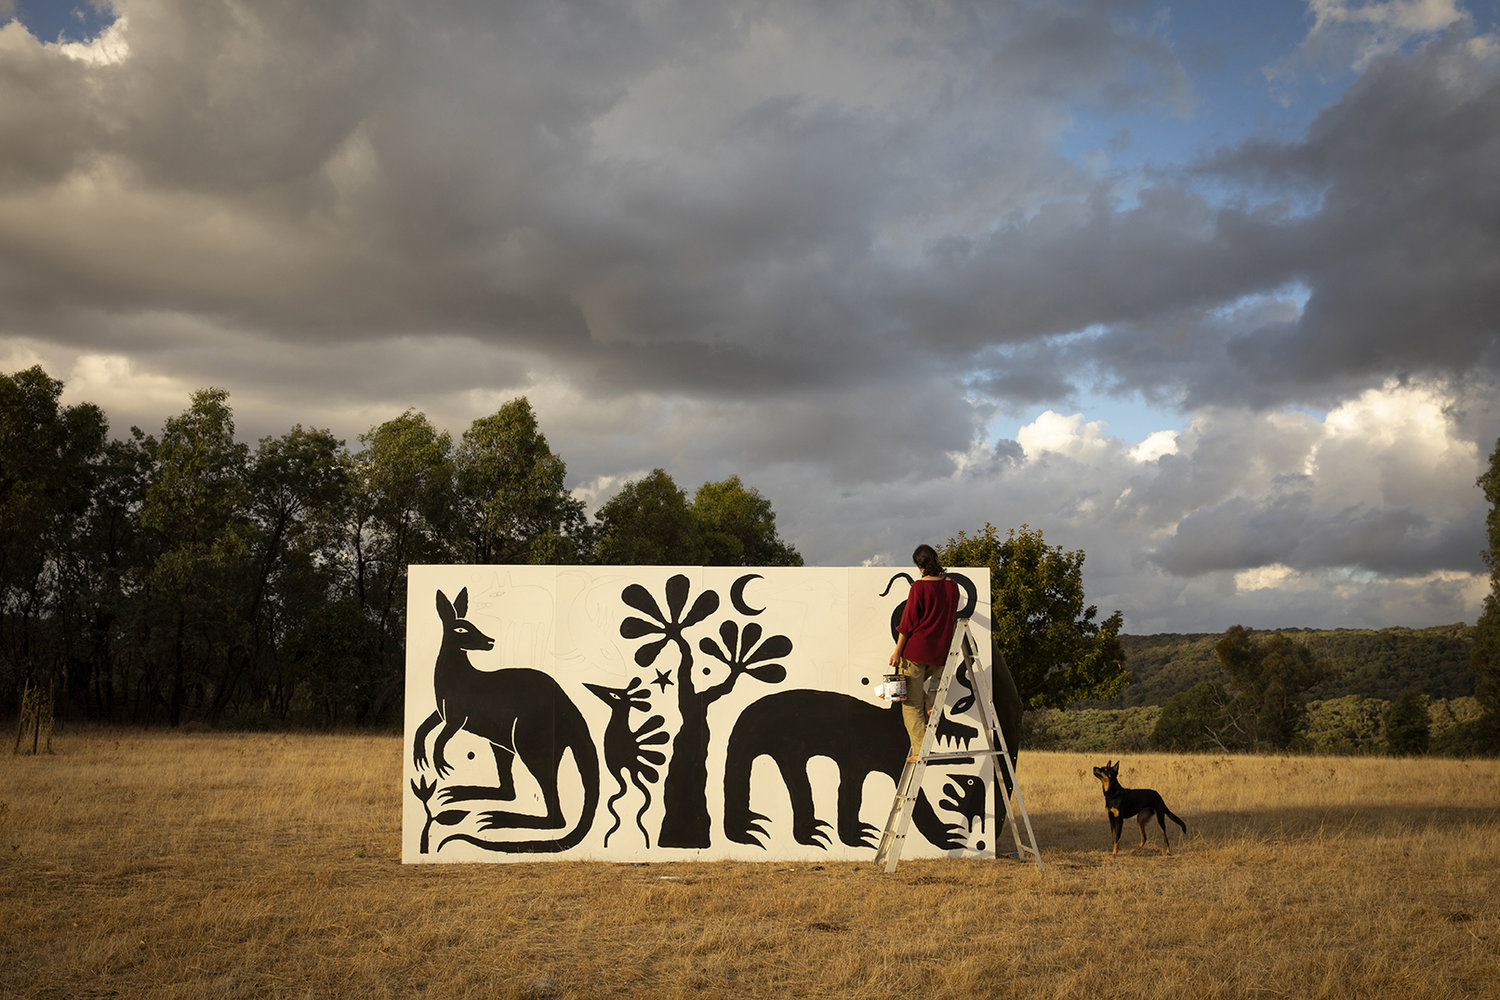 Leunig at work on one of her murals. Click to see more.